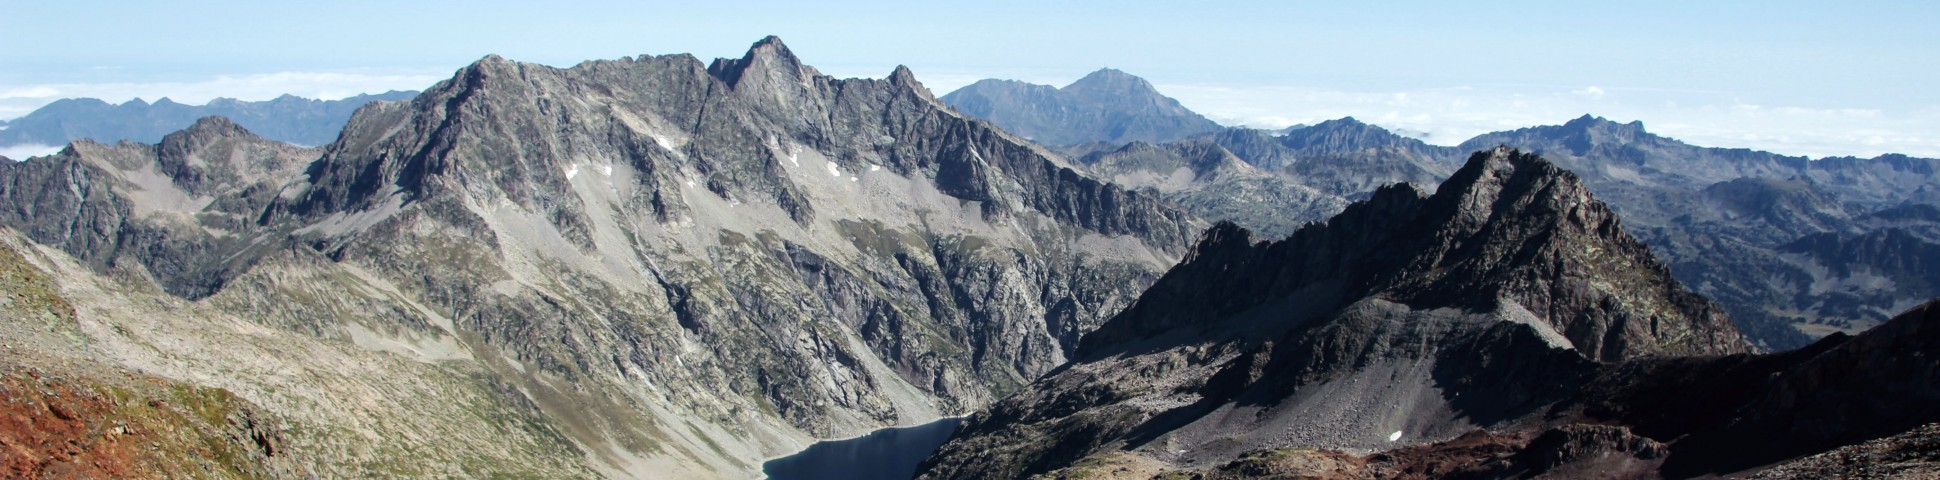 Mountains in French Pyrenees